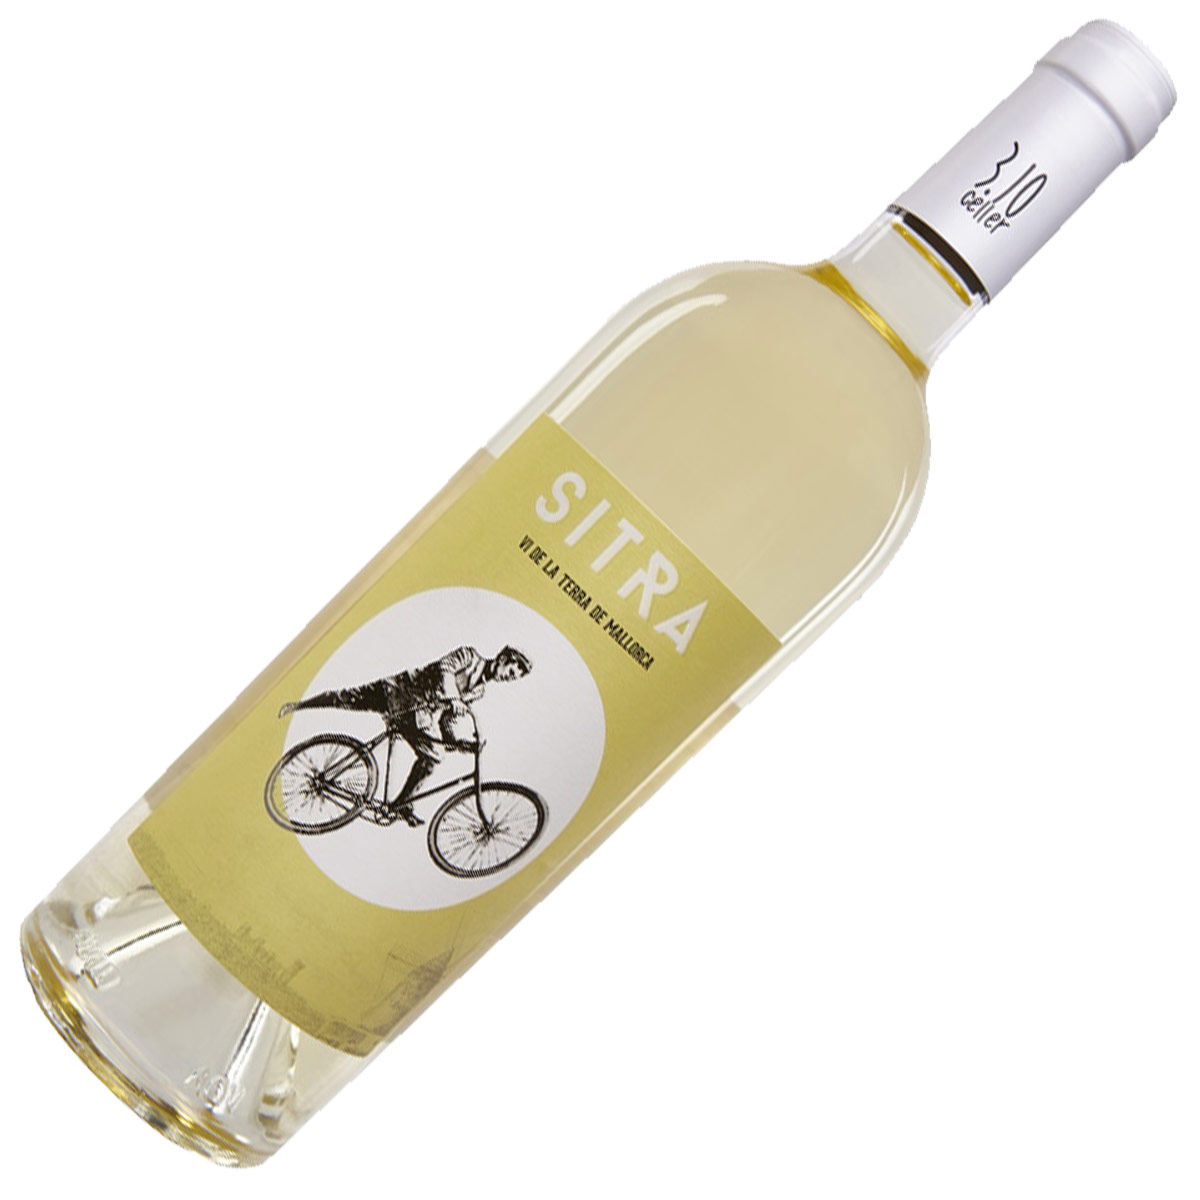 3.10 Celler Sitra Eco white wine